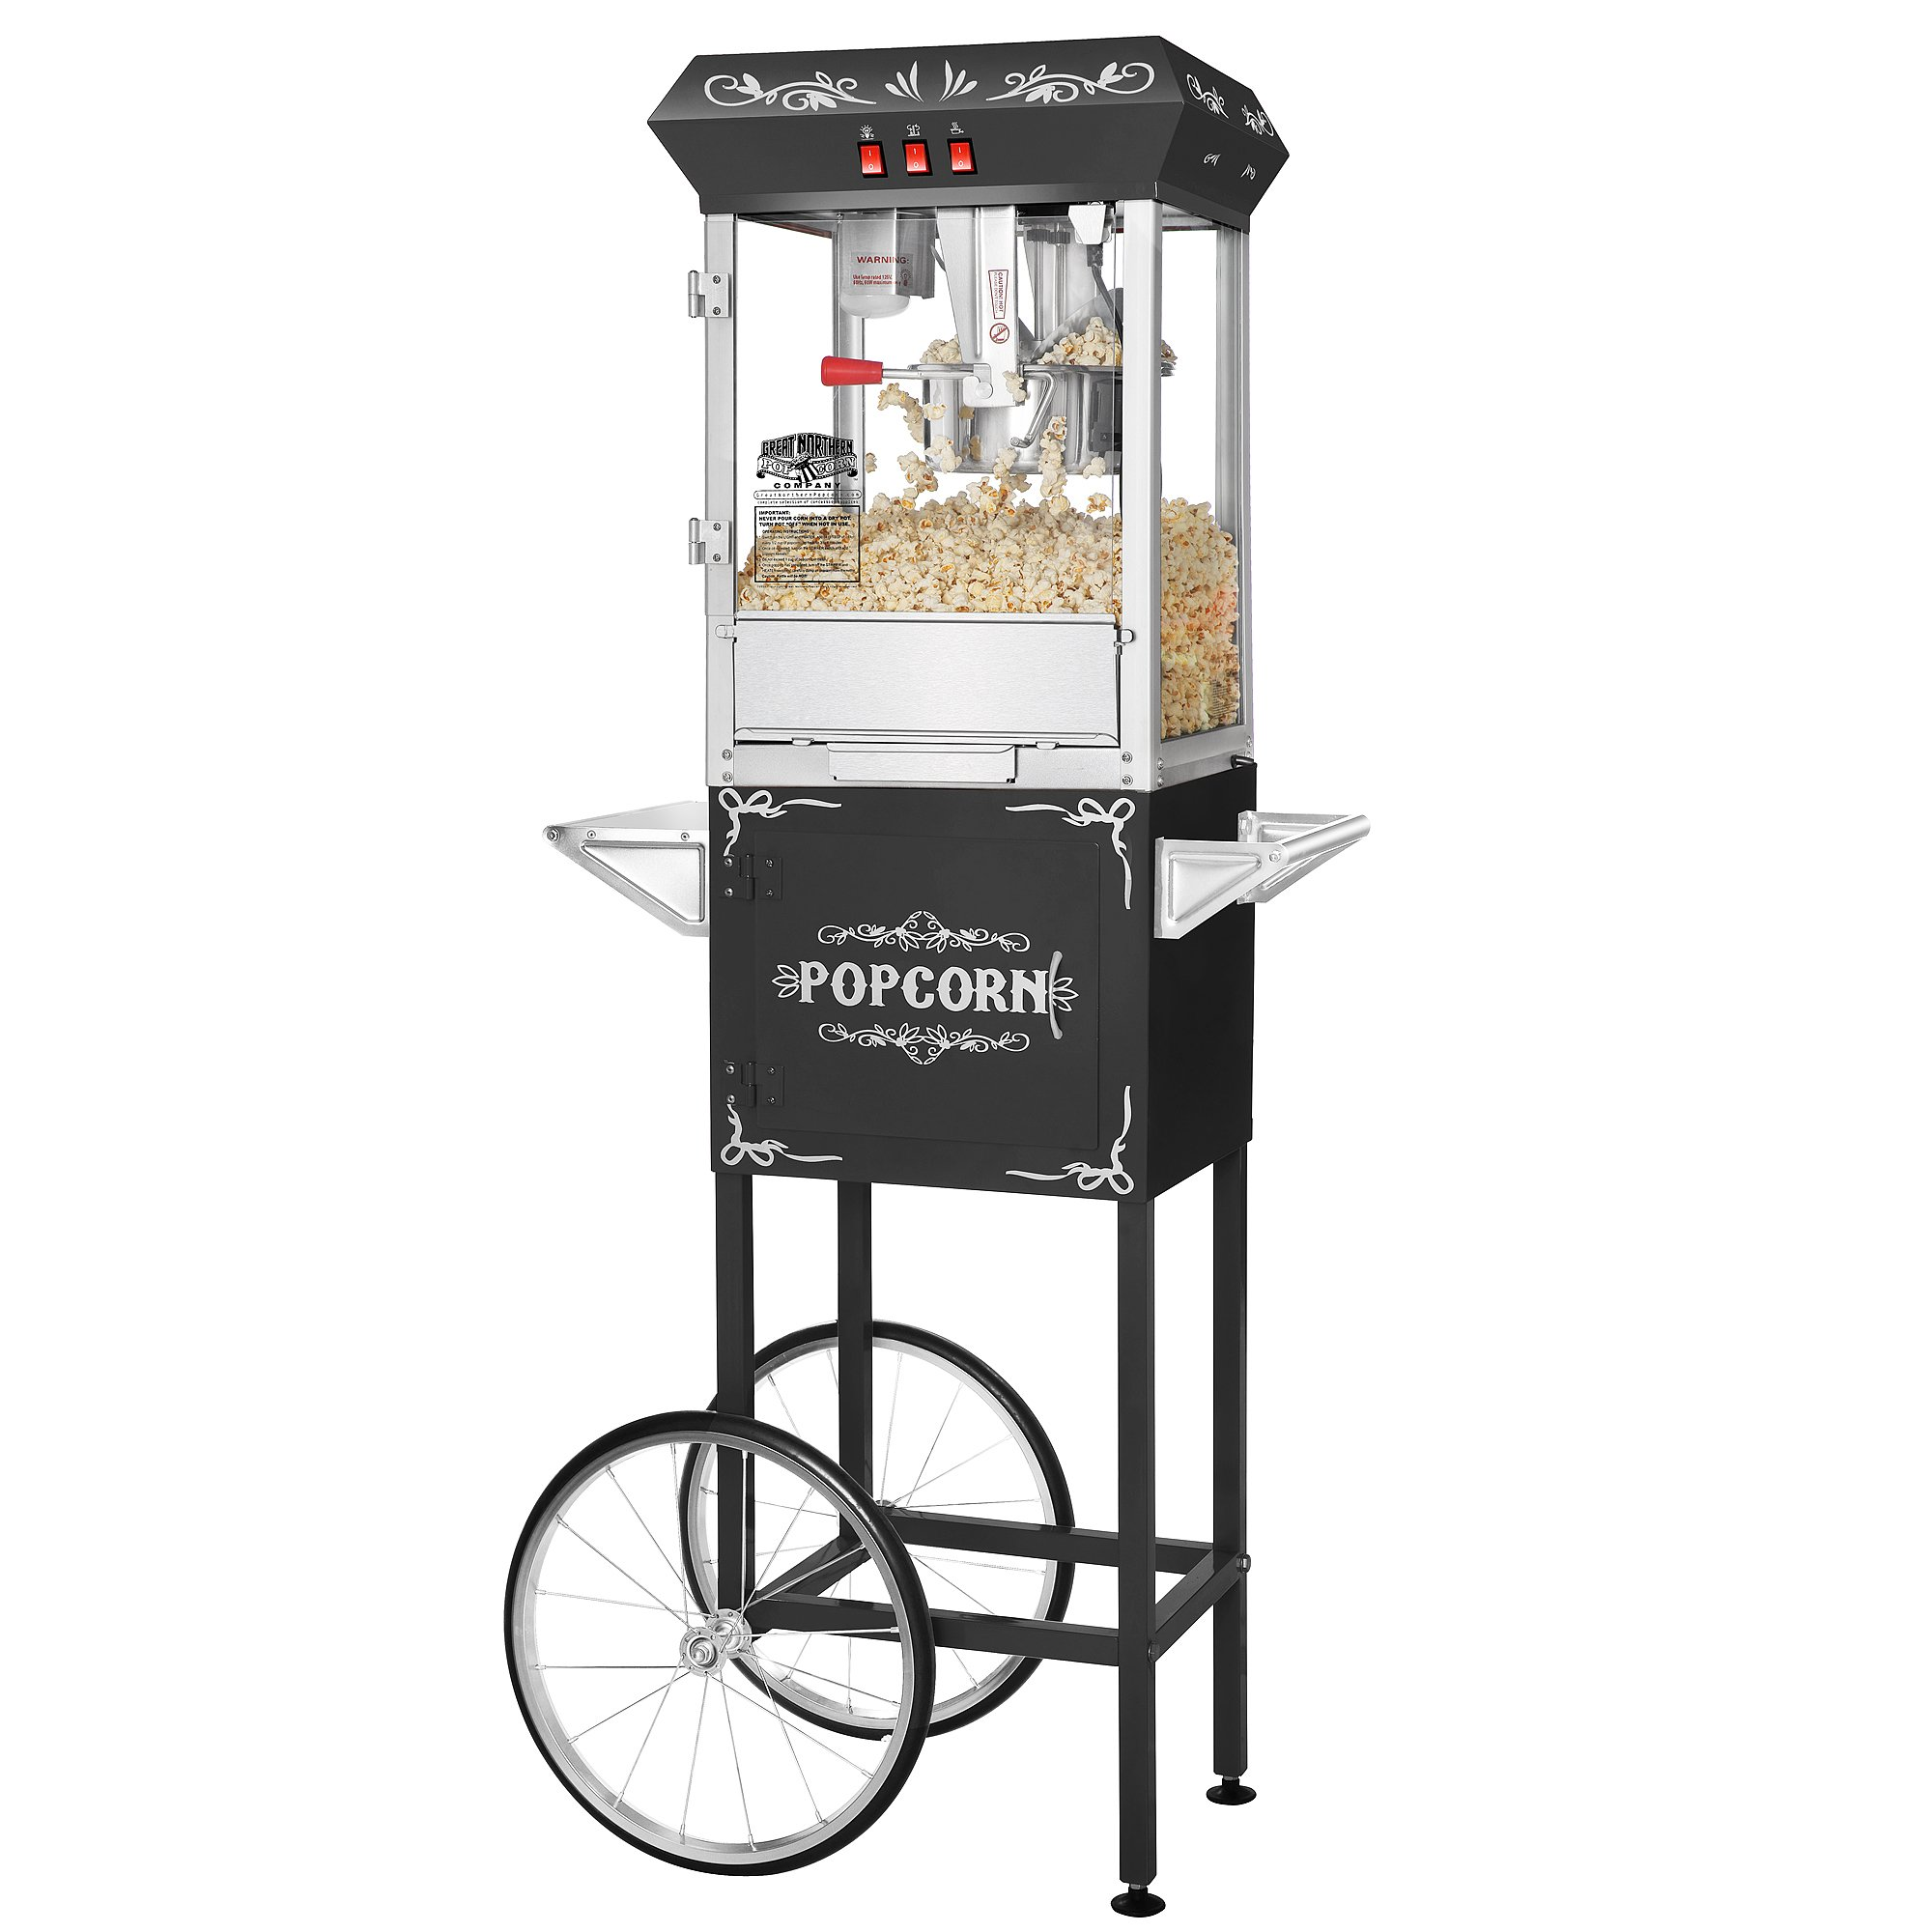 Great Northern Popcorn Black 8 oz. Ounce Foundation Vintage Style Popcorn Machine and Cart by Great Northern Popcorn Company (Image #1)